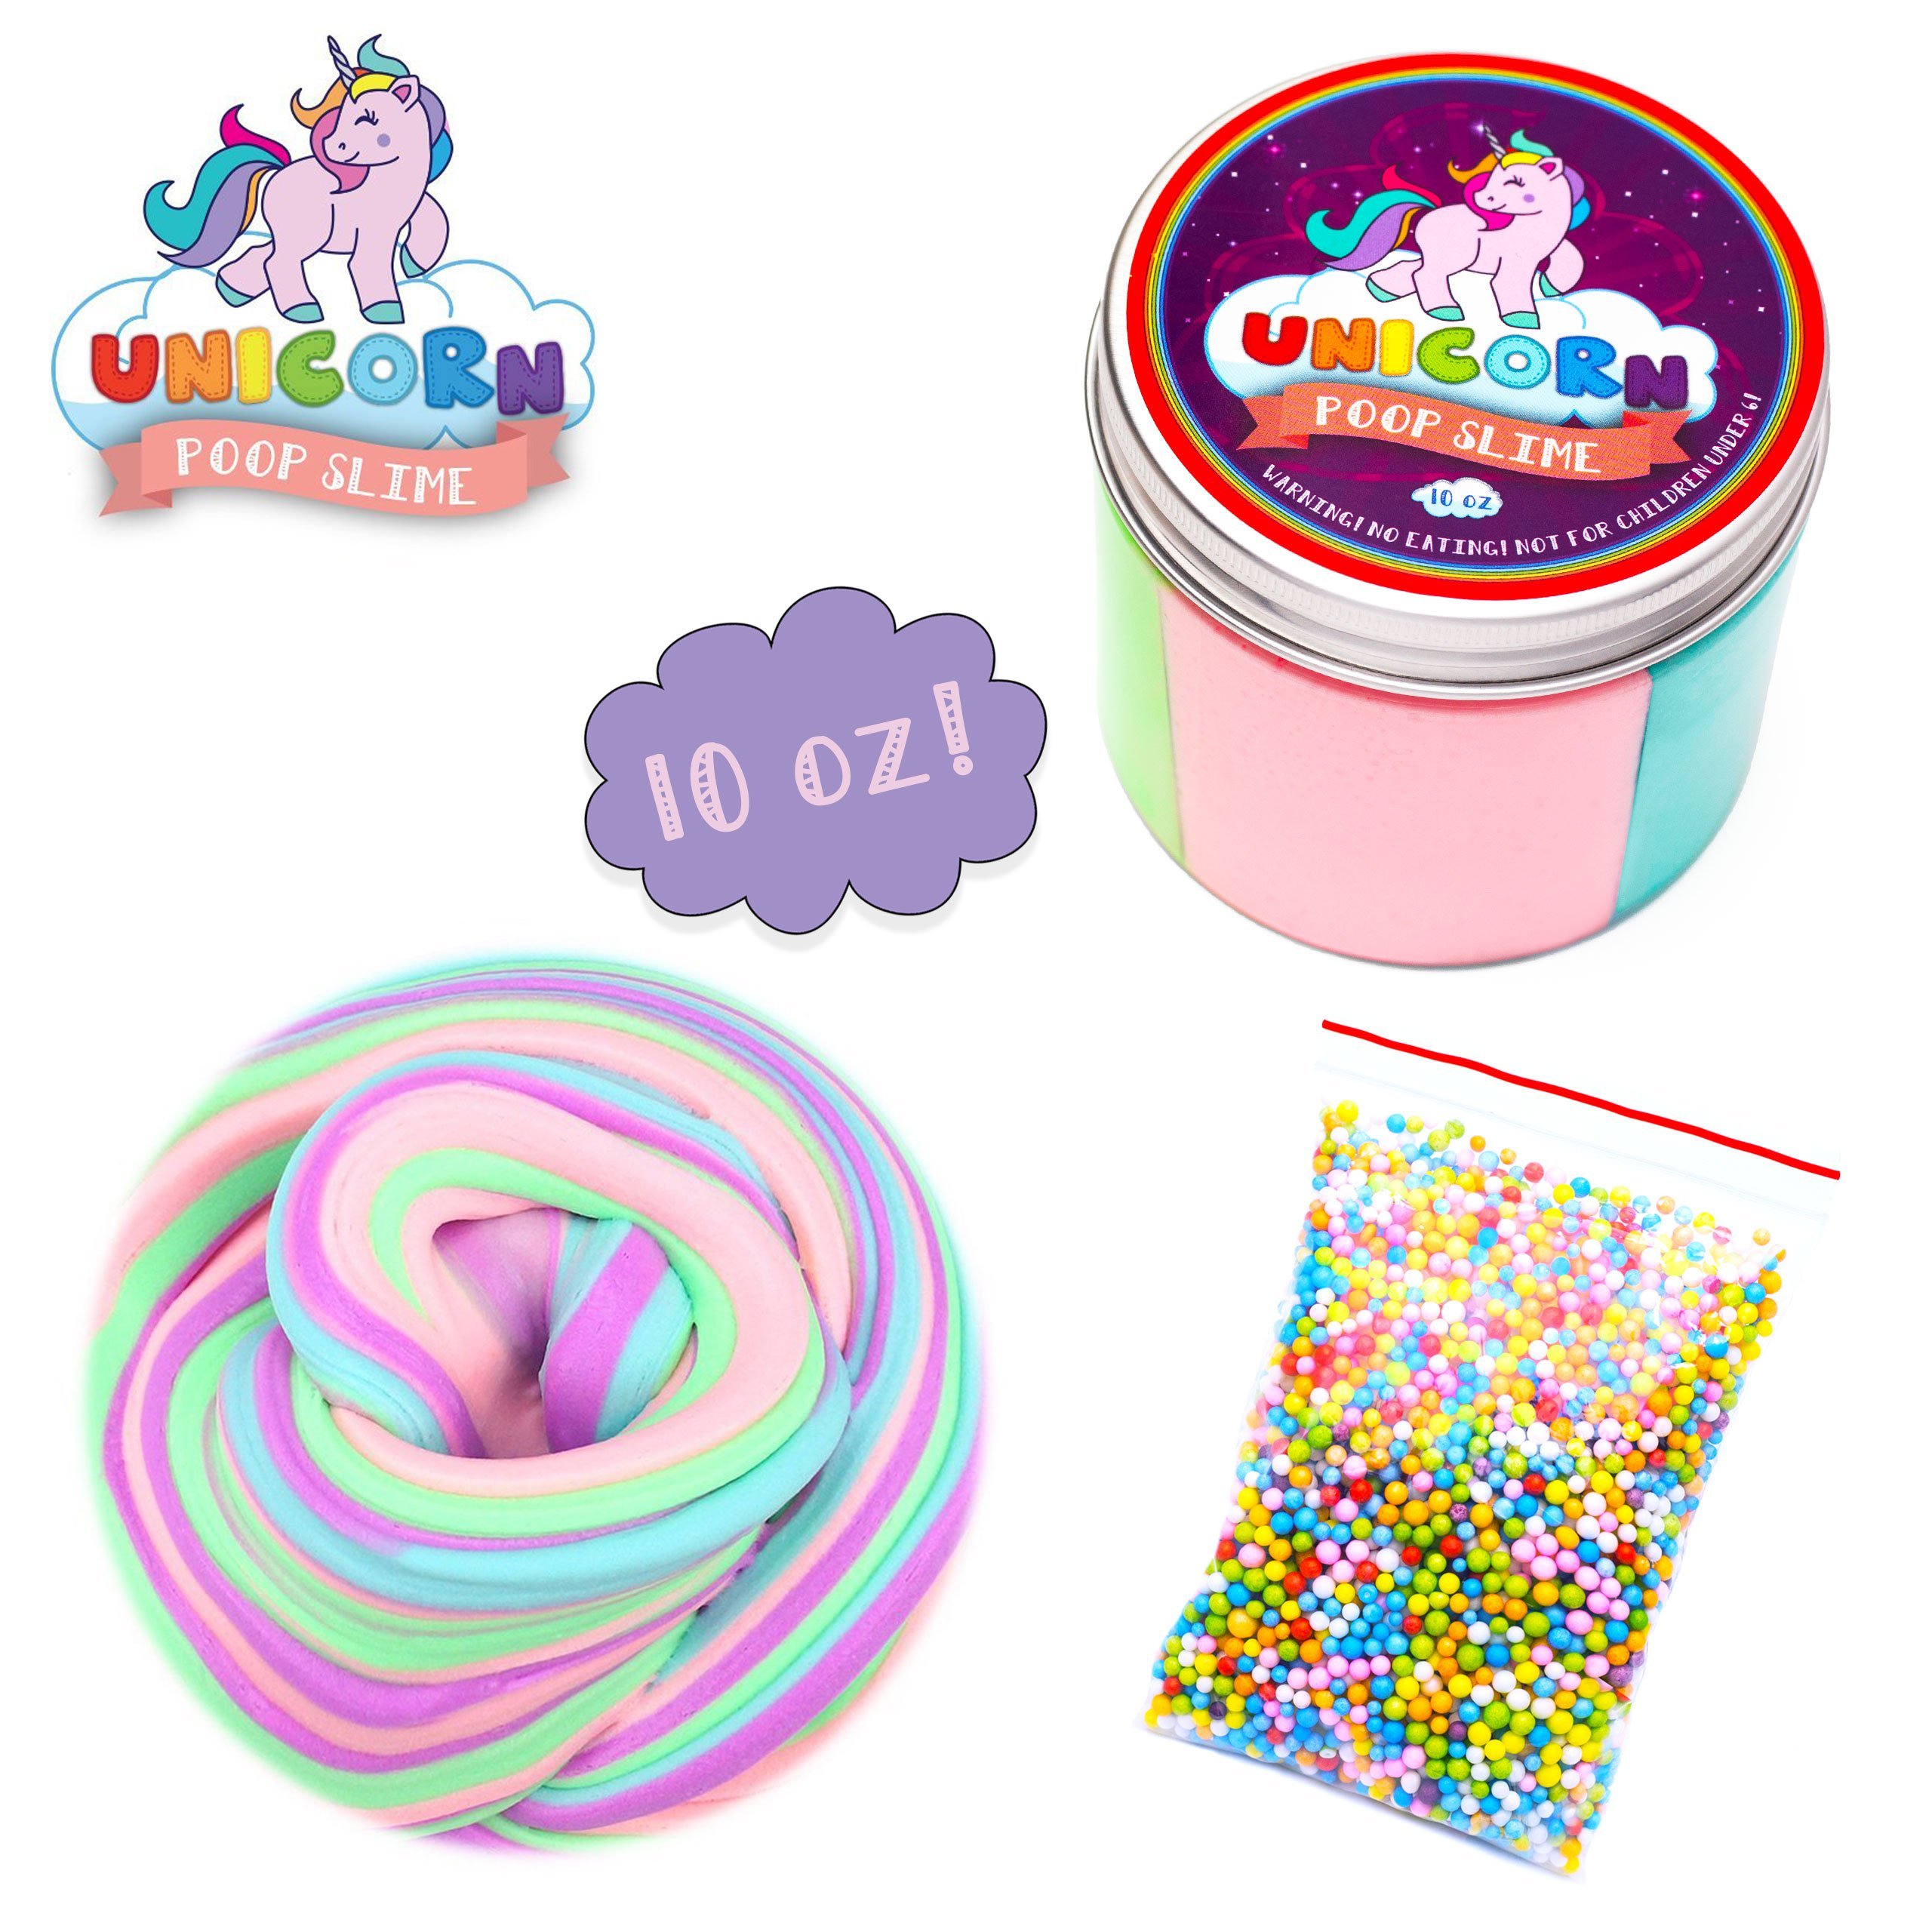 Fluffy Unicorn Poop Slime kit - Unicorn gifts for girls - Soft extra Fluffy Floam putty package by My Playful Kiddos (Image #1)